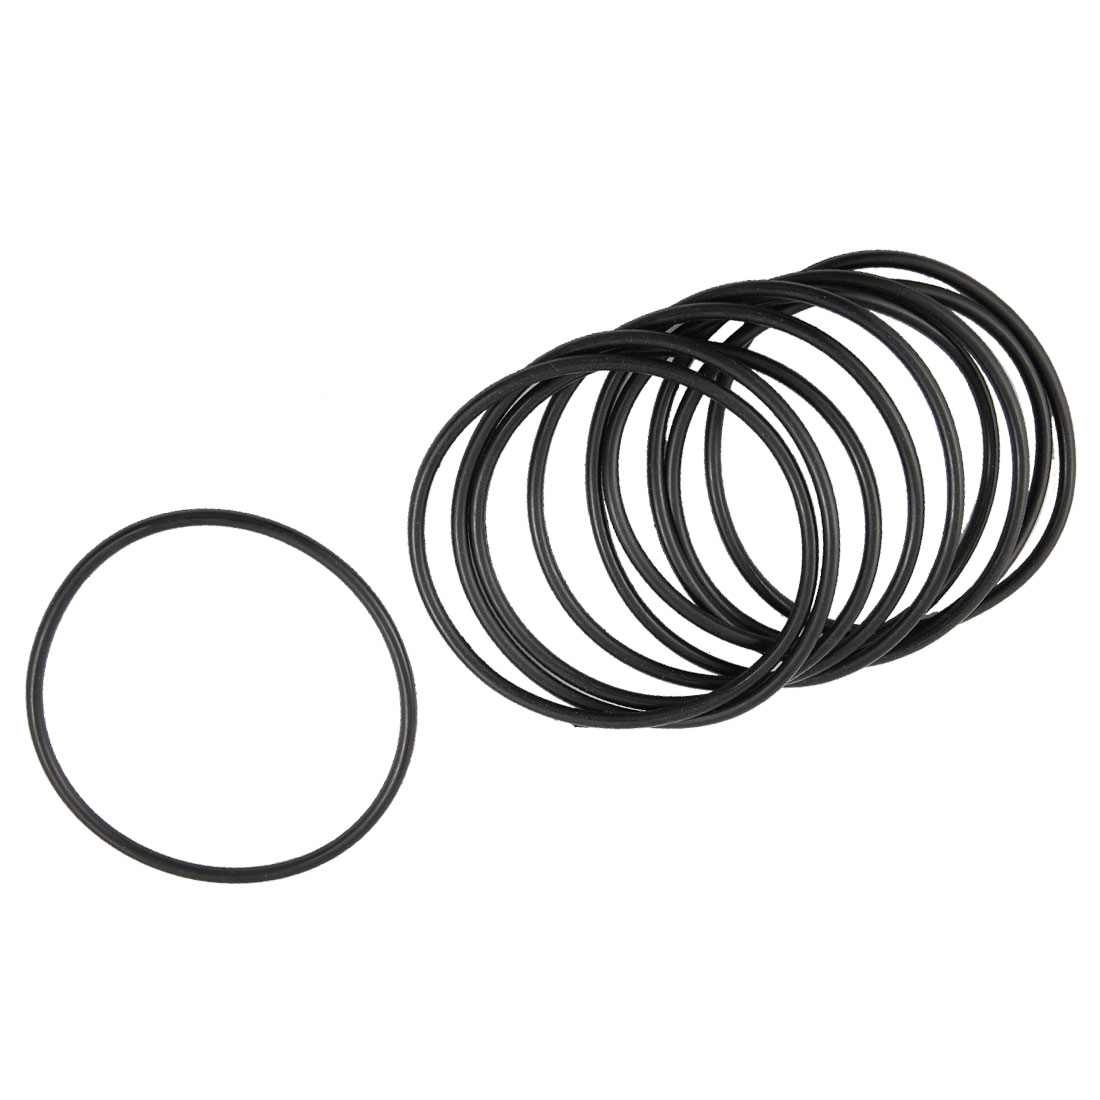 Unique Bargains 95mm Outside Dia O-ring Oil Seal Sealing Ring Gaskets 10 Pcs